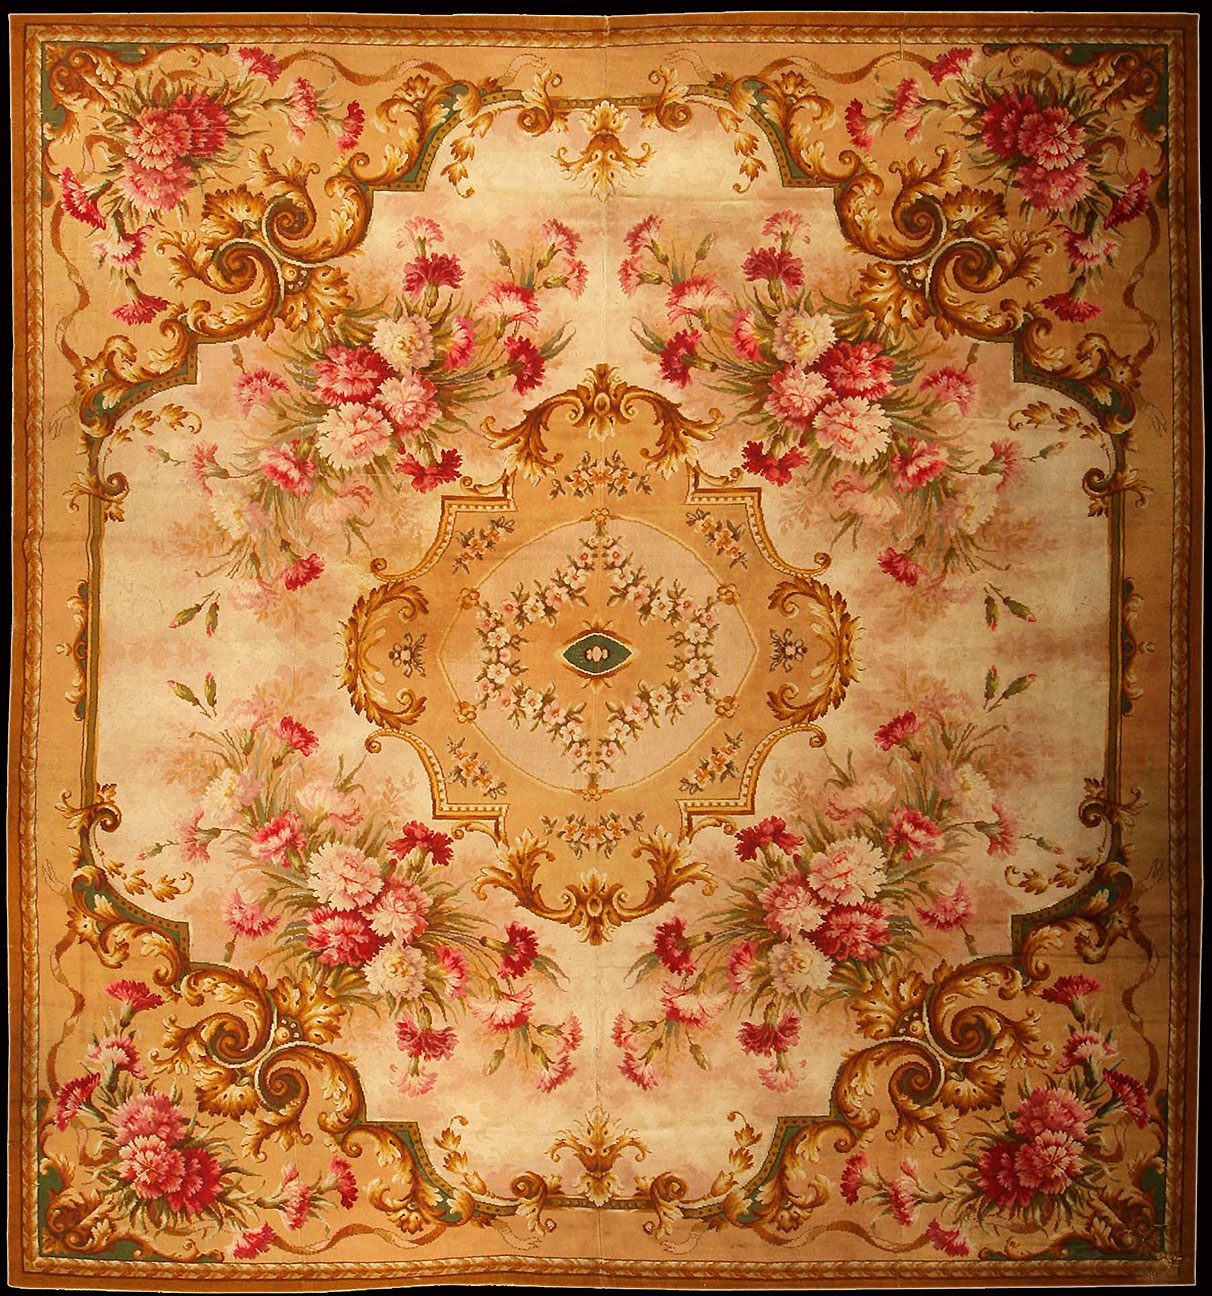 Antique axminster Carpet - # 50180